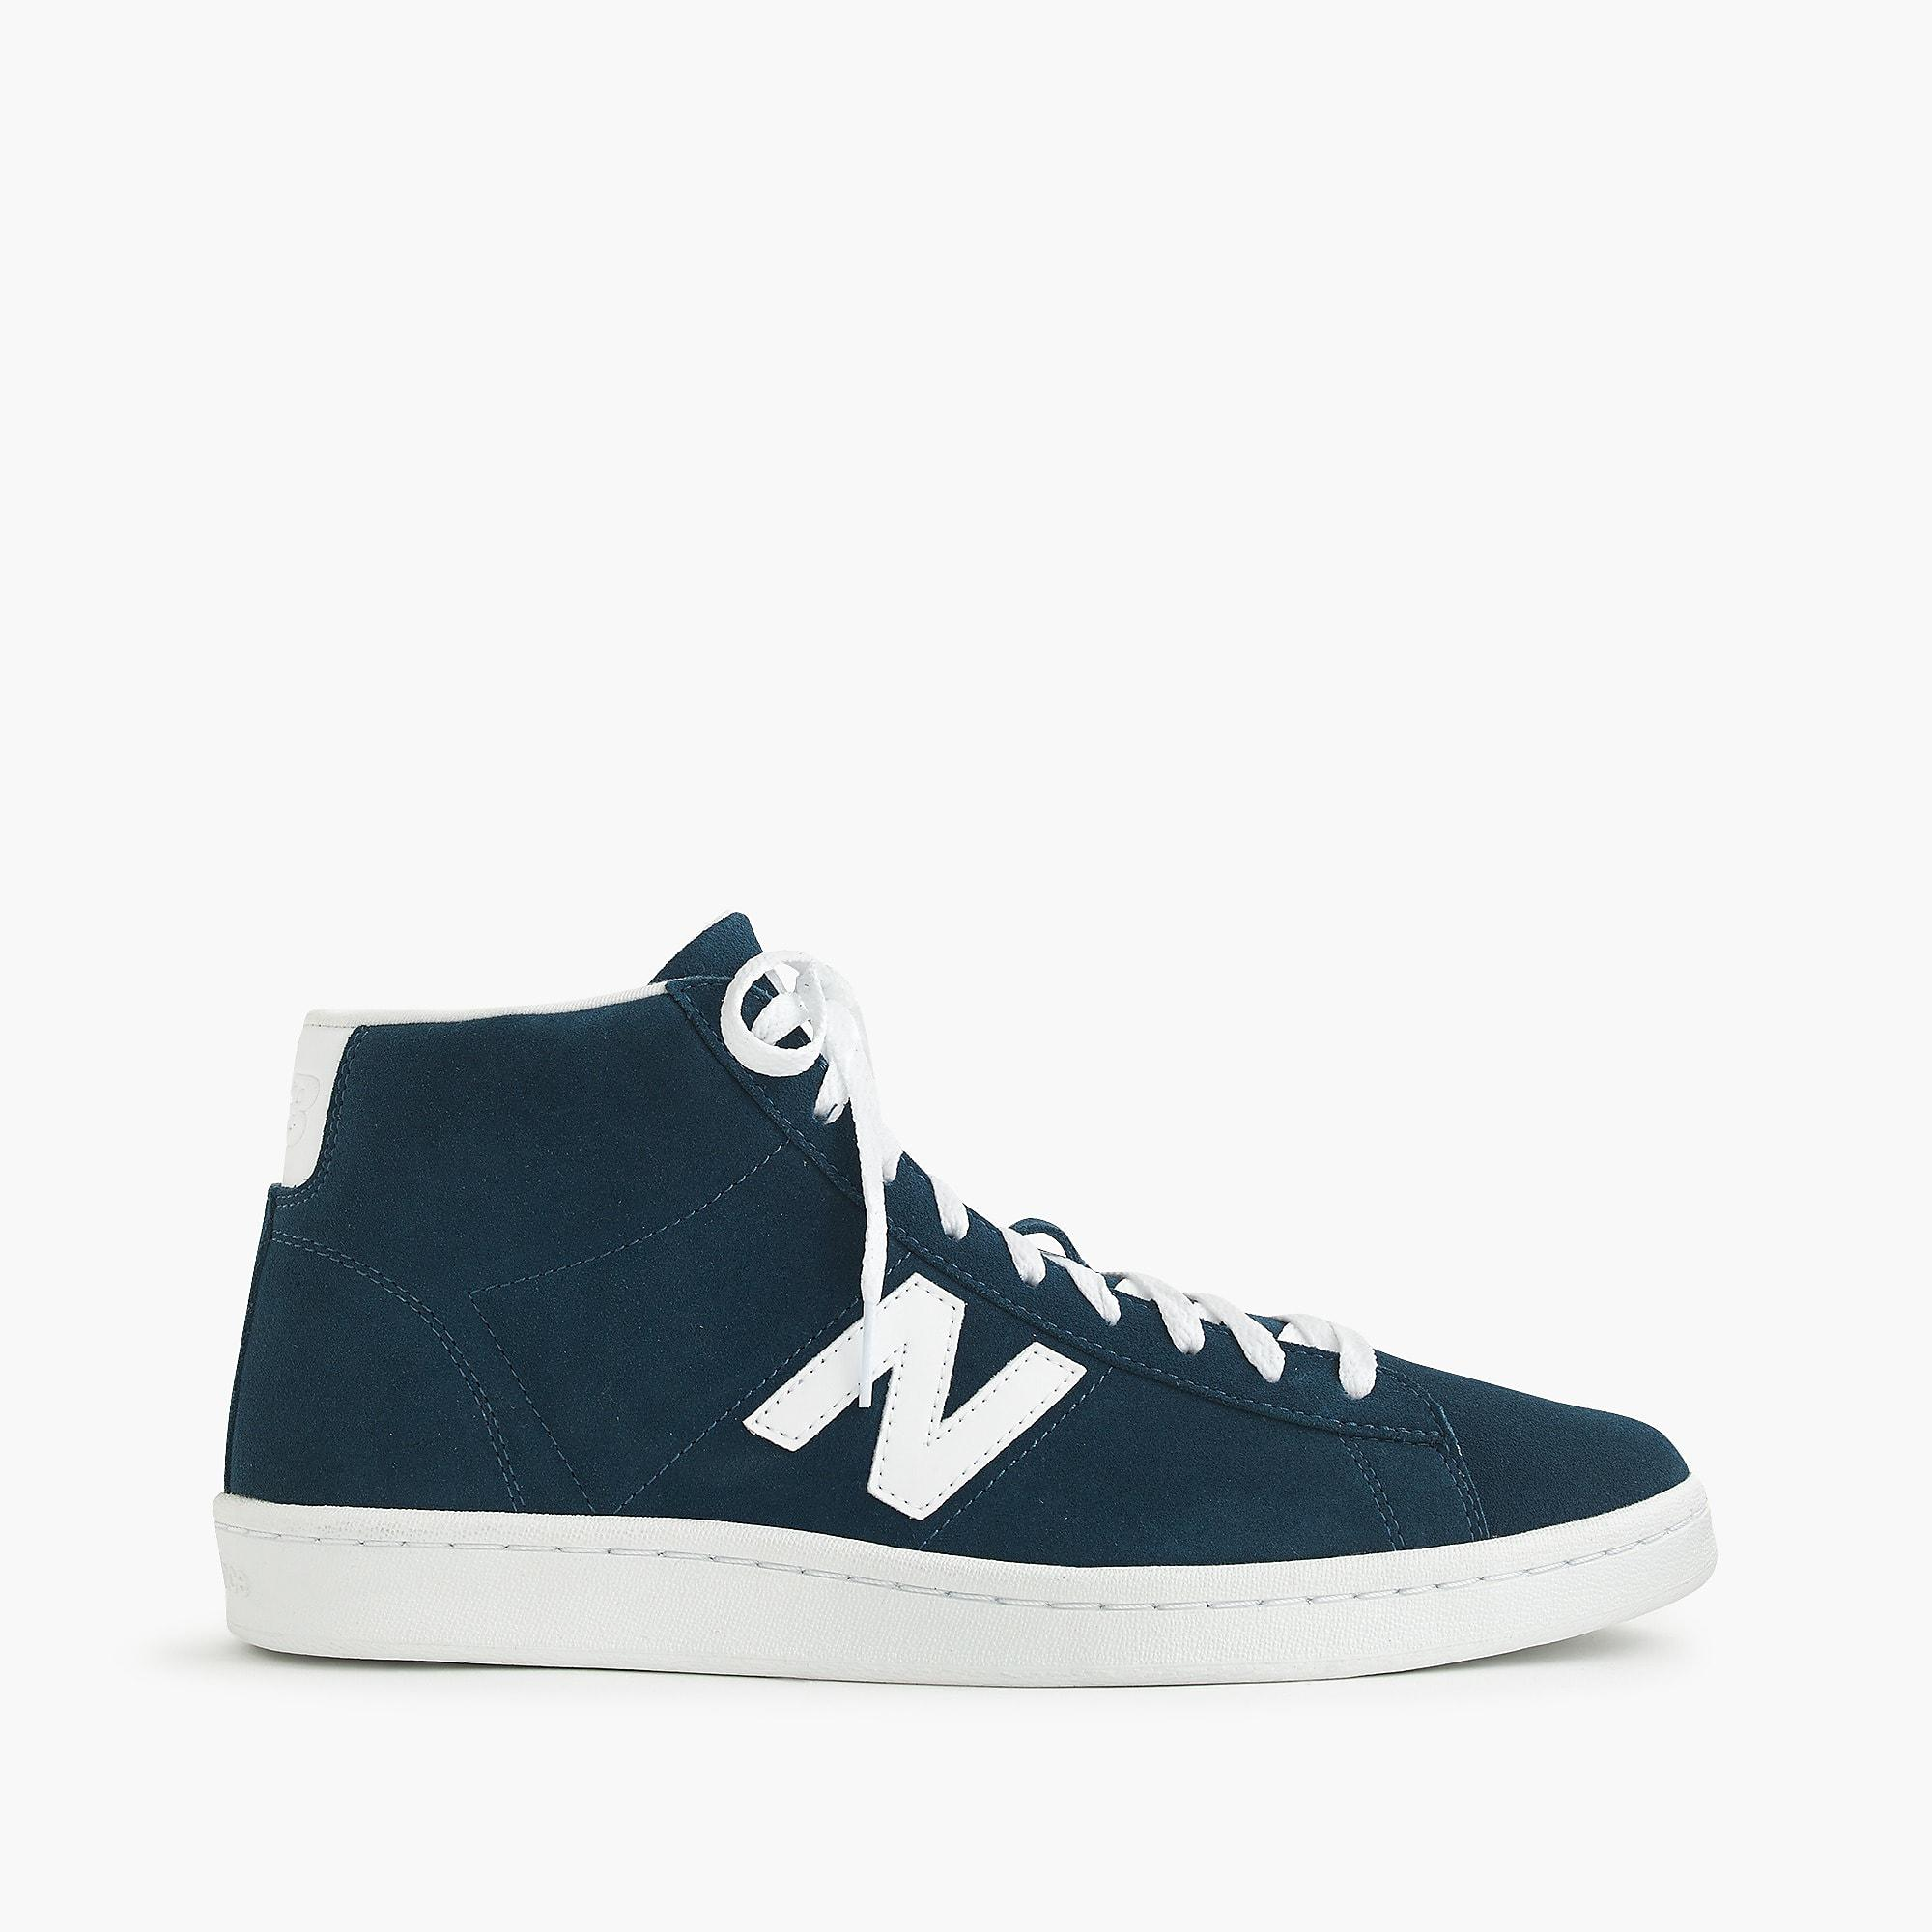 74cdc916e1b3 New Balance 891 High-top Sneakers in Blue for Men - Lyst